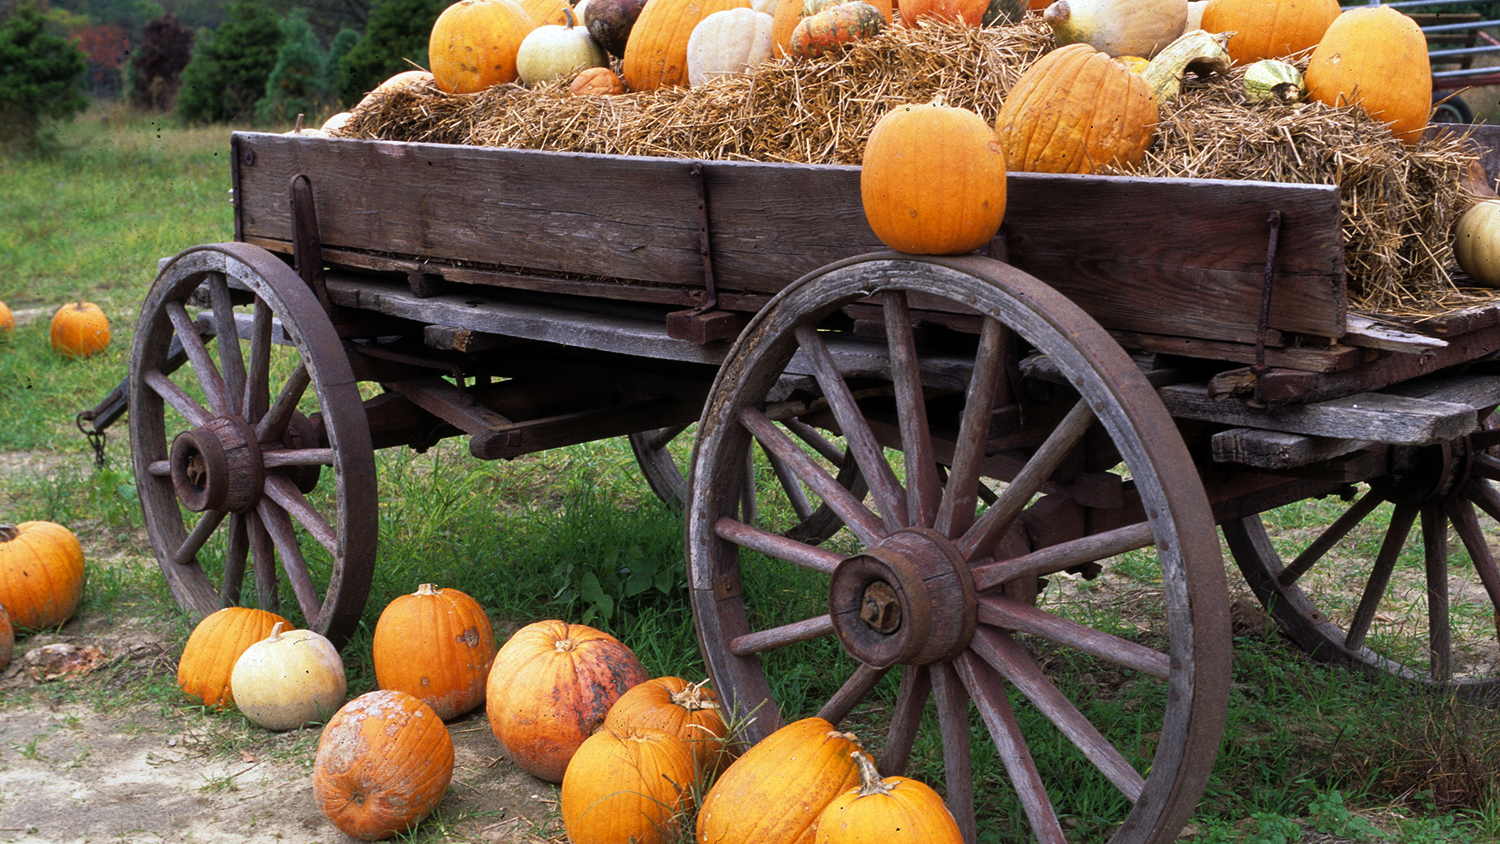 CALS Homegrown Wagon Full Of Pumpkins Pick The Best